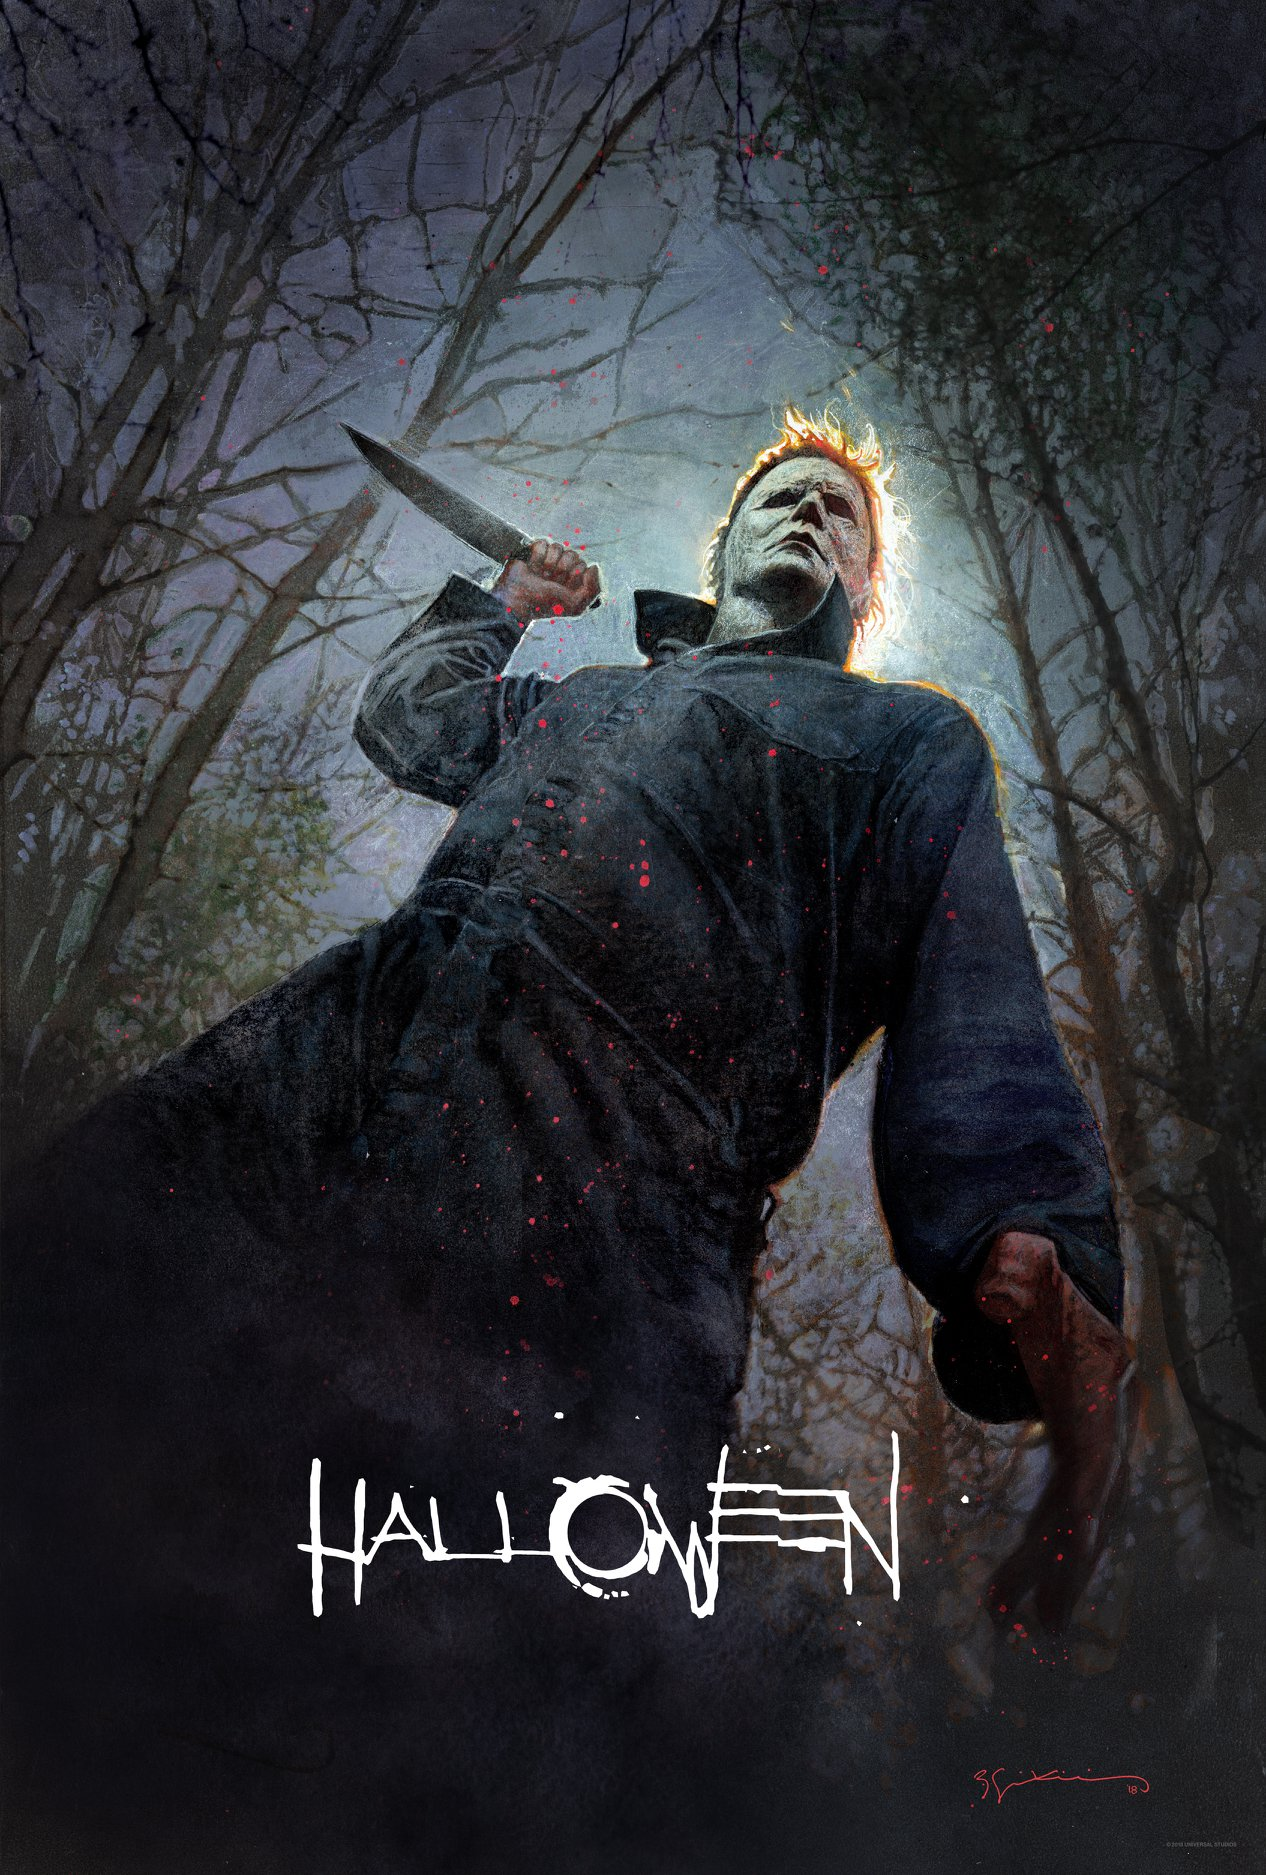 review: the only scary thing about this year's 'halloween' is the